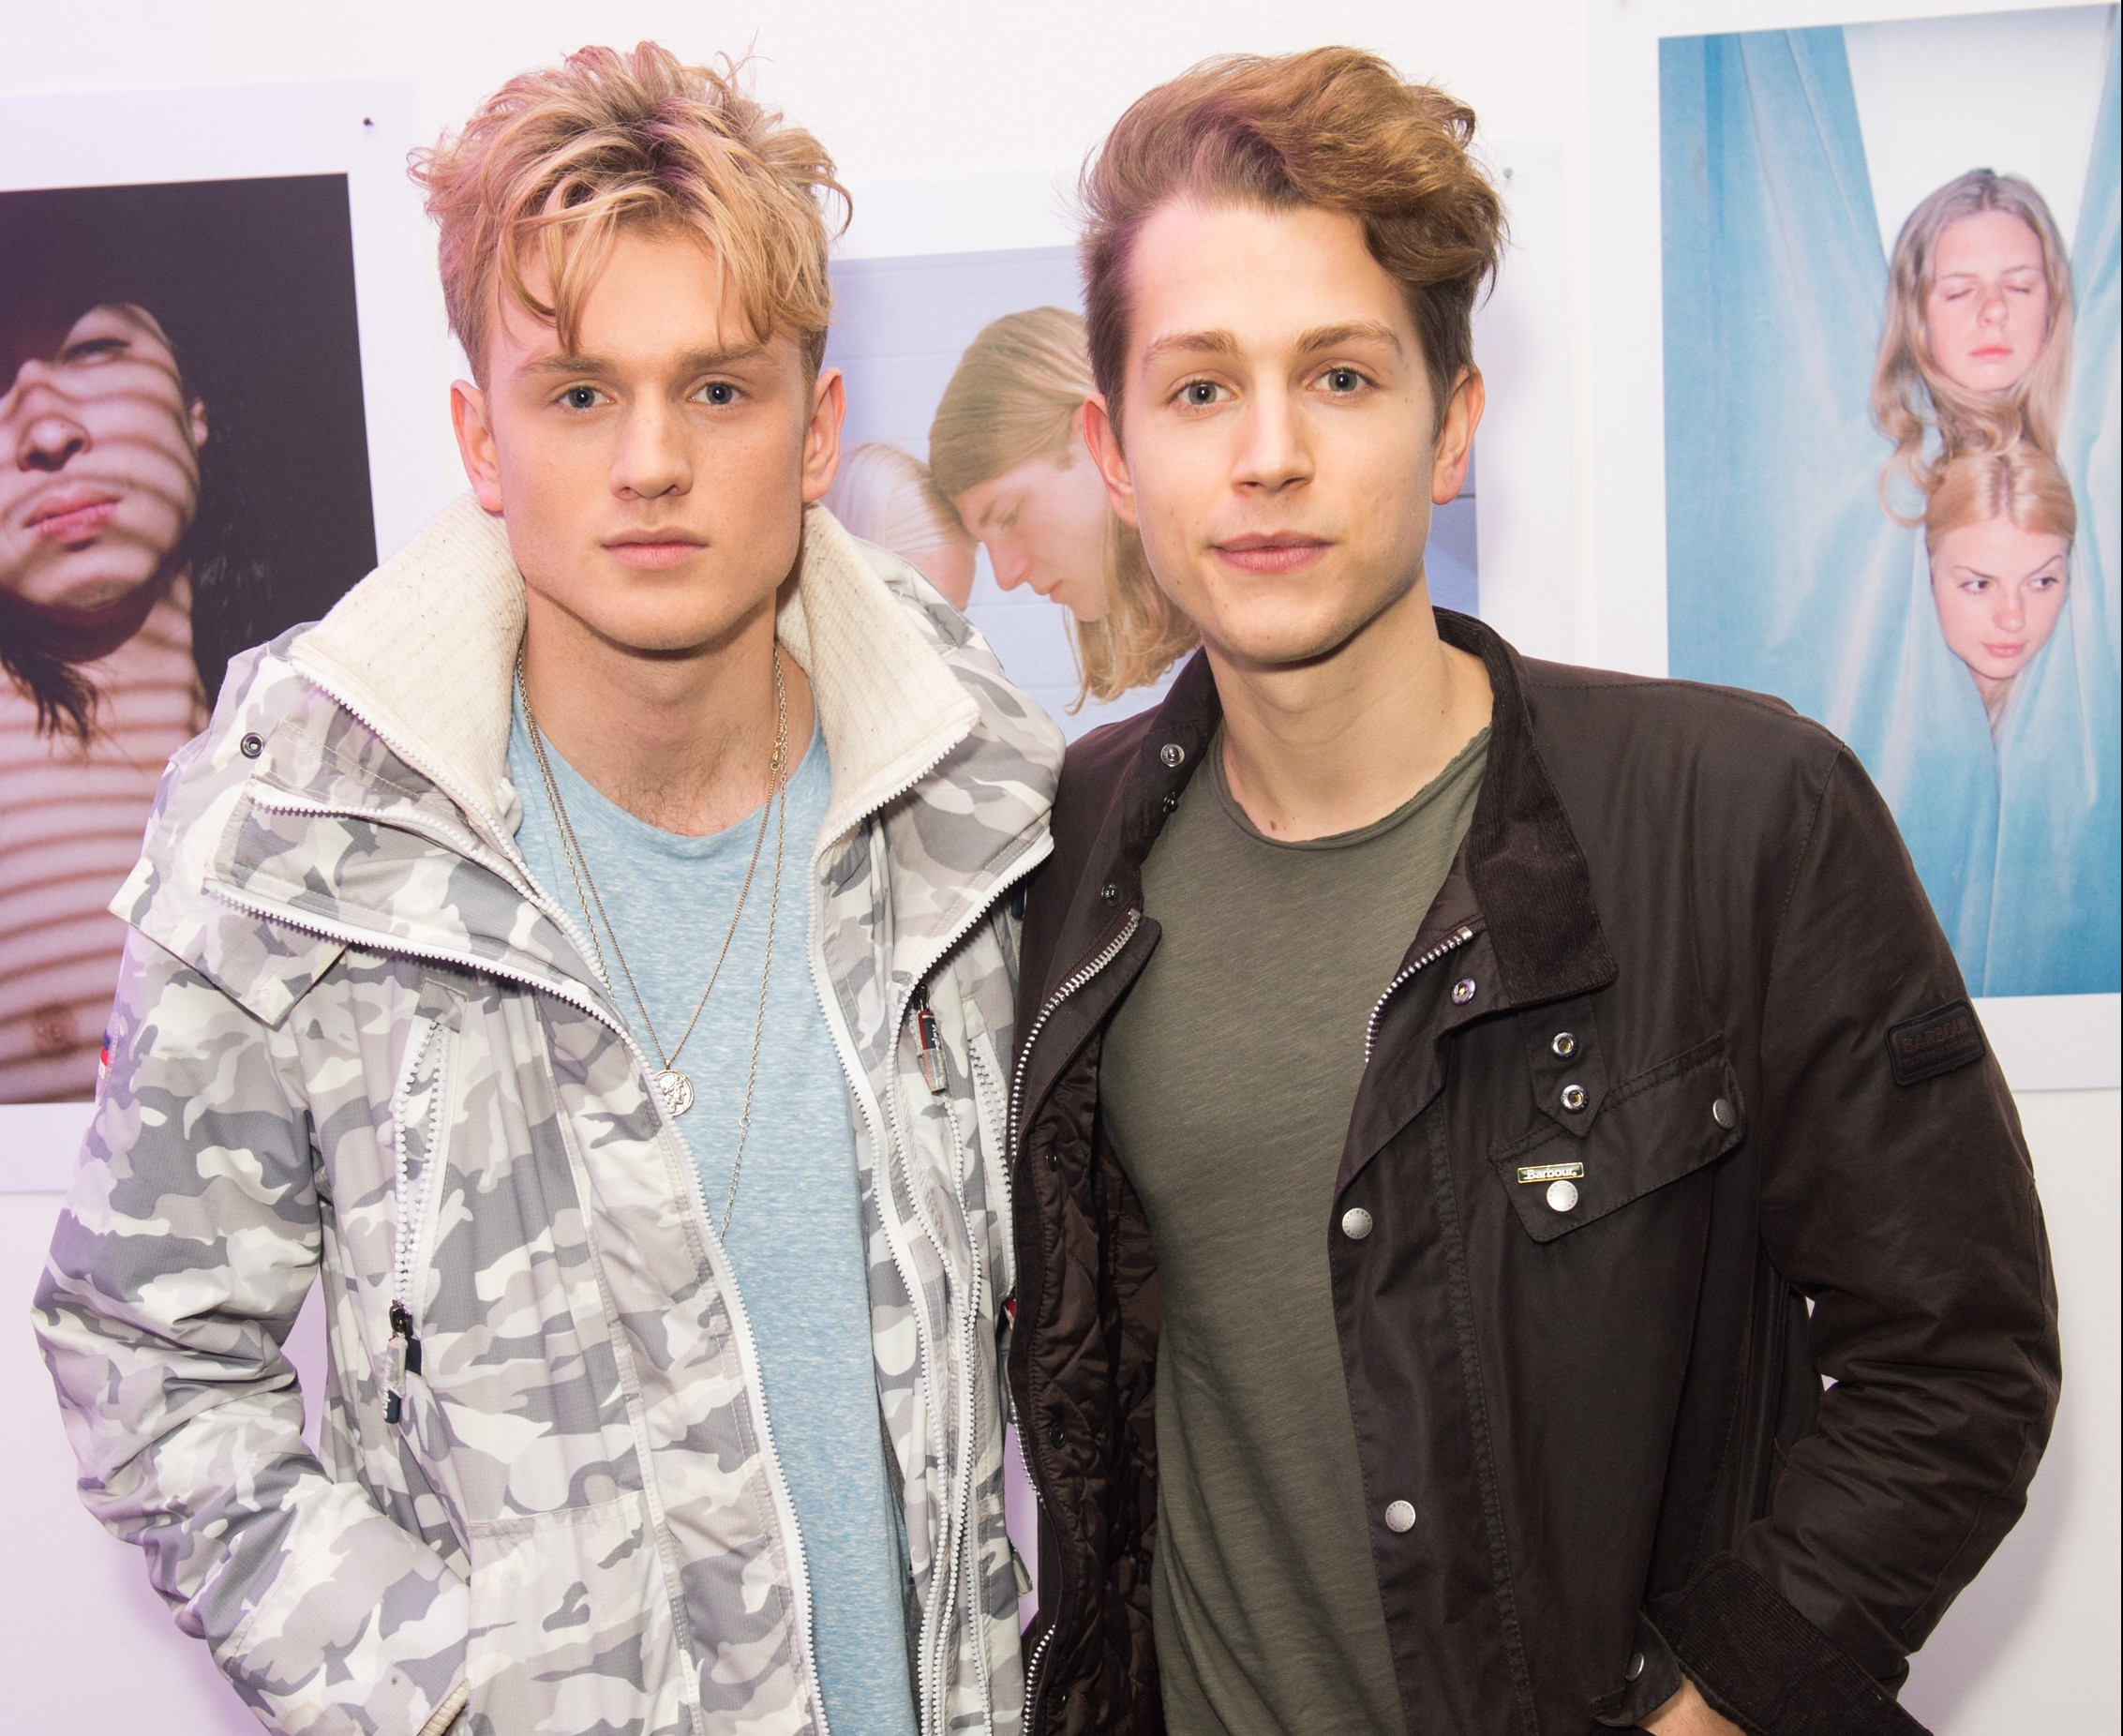 LONDON, ENGLAND - FEBRUARY 20: James McVey and Tristan Evans of The Vamps attend the Urban Outfitters and Centrefold magazine LFW launch party to showcase artists from around the world in a limited edition coffee table magazine and exhibit at Unit London on February 20, 2016 in London, England. (Photo by Samir Hussein/Getty Images for Urban Outfitters)